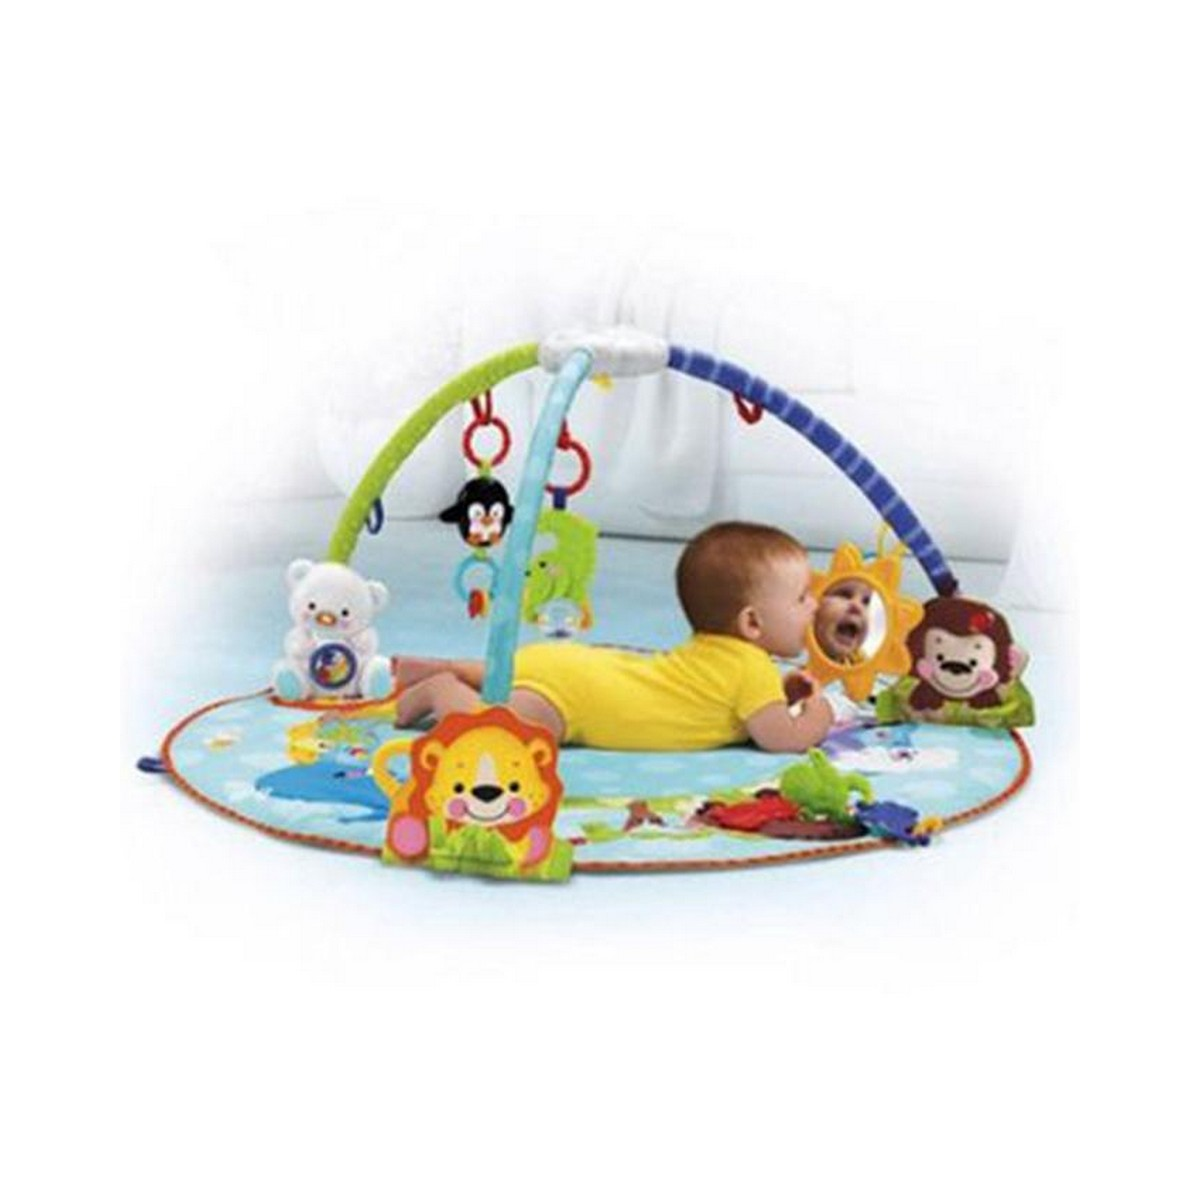 Baby Play Gym - Multicolour